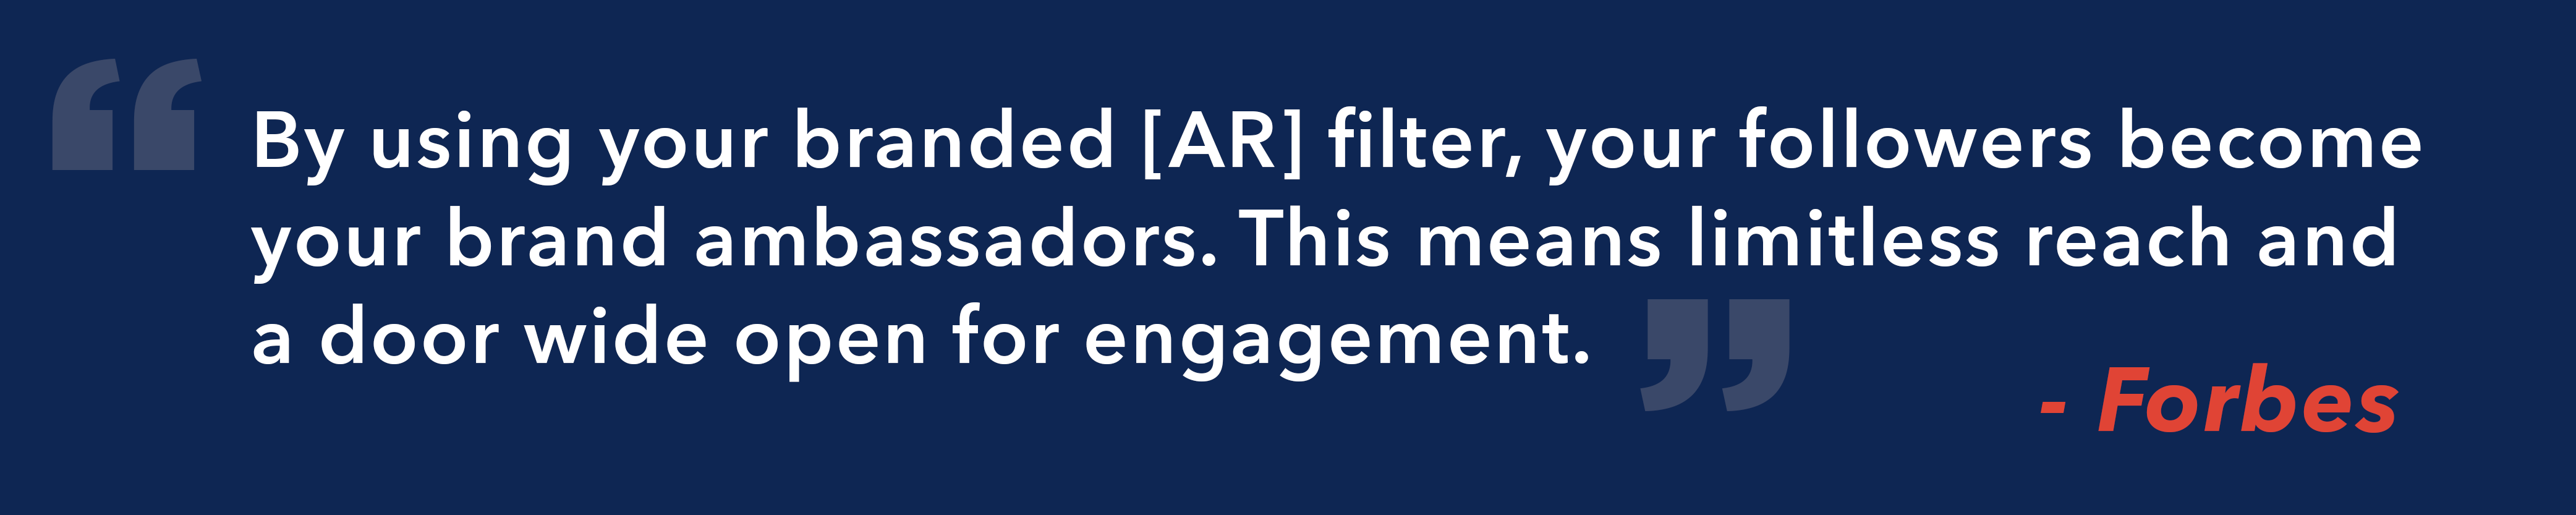 A navy blue text graphic that reads: By using your branded [AR] filter, your followers become your brand ambassadors. This means limitless reach and a door wide open for engagement.